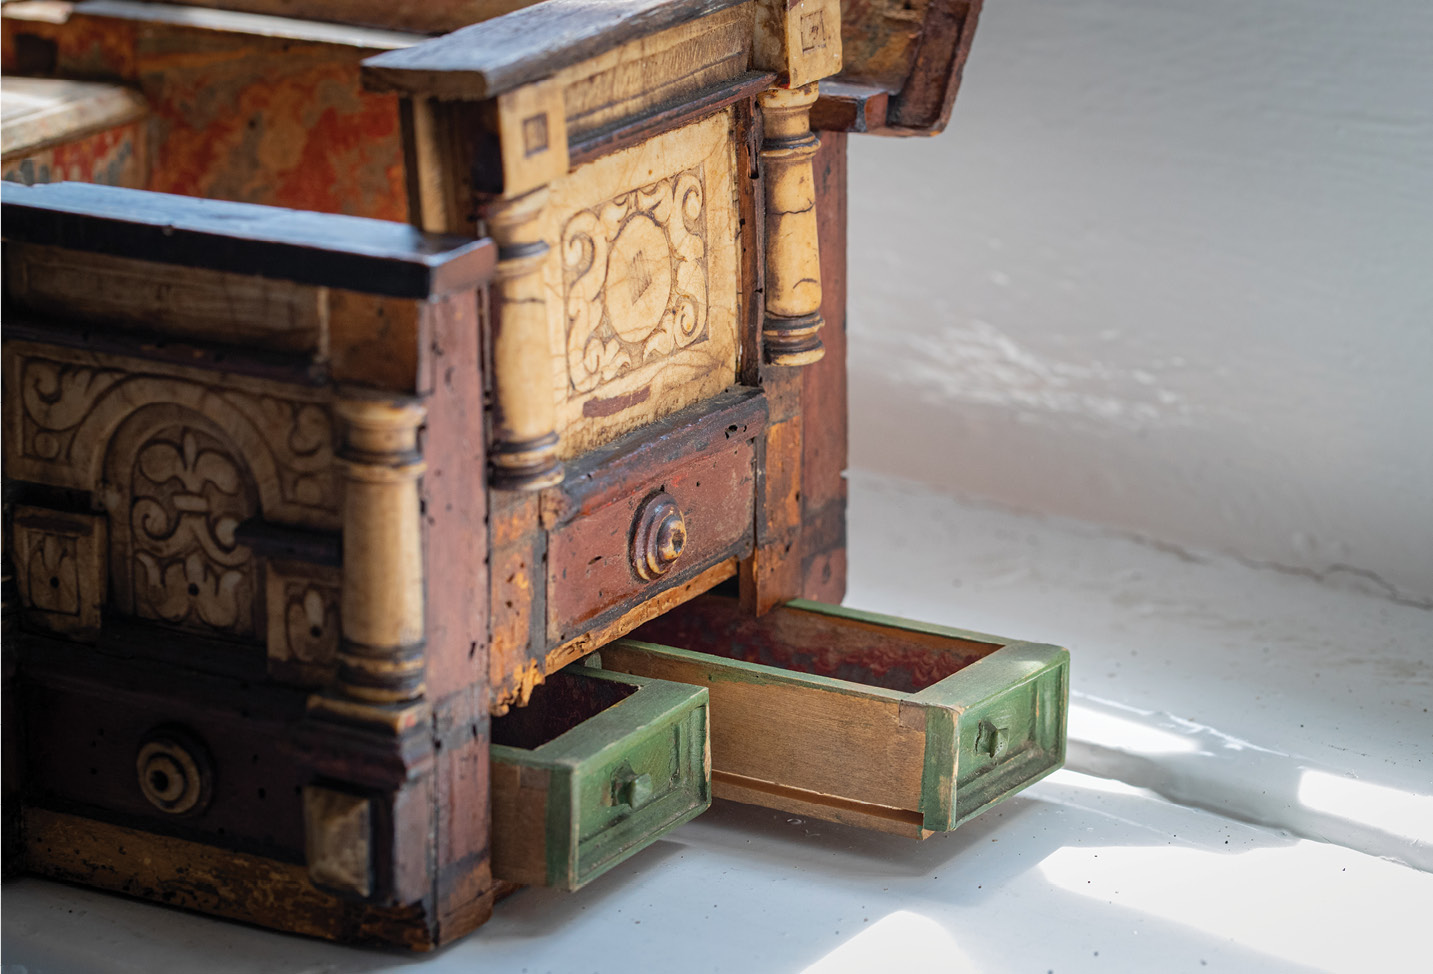 LEFT A recent collaboration with Southampton University revealed the presence of a previously unknown secret drawer in this 17th-century casket held by the Society.